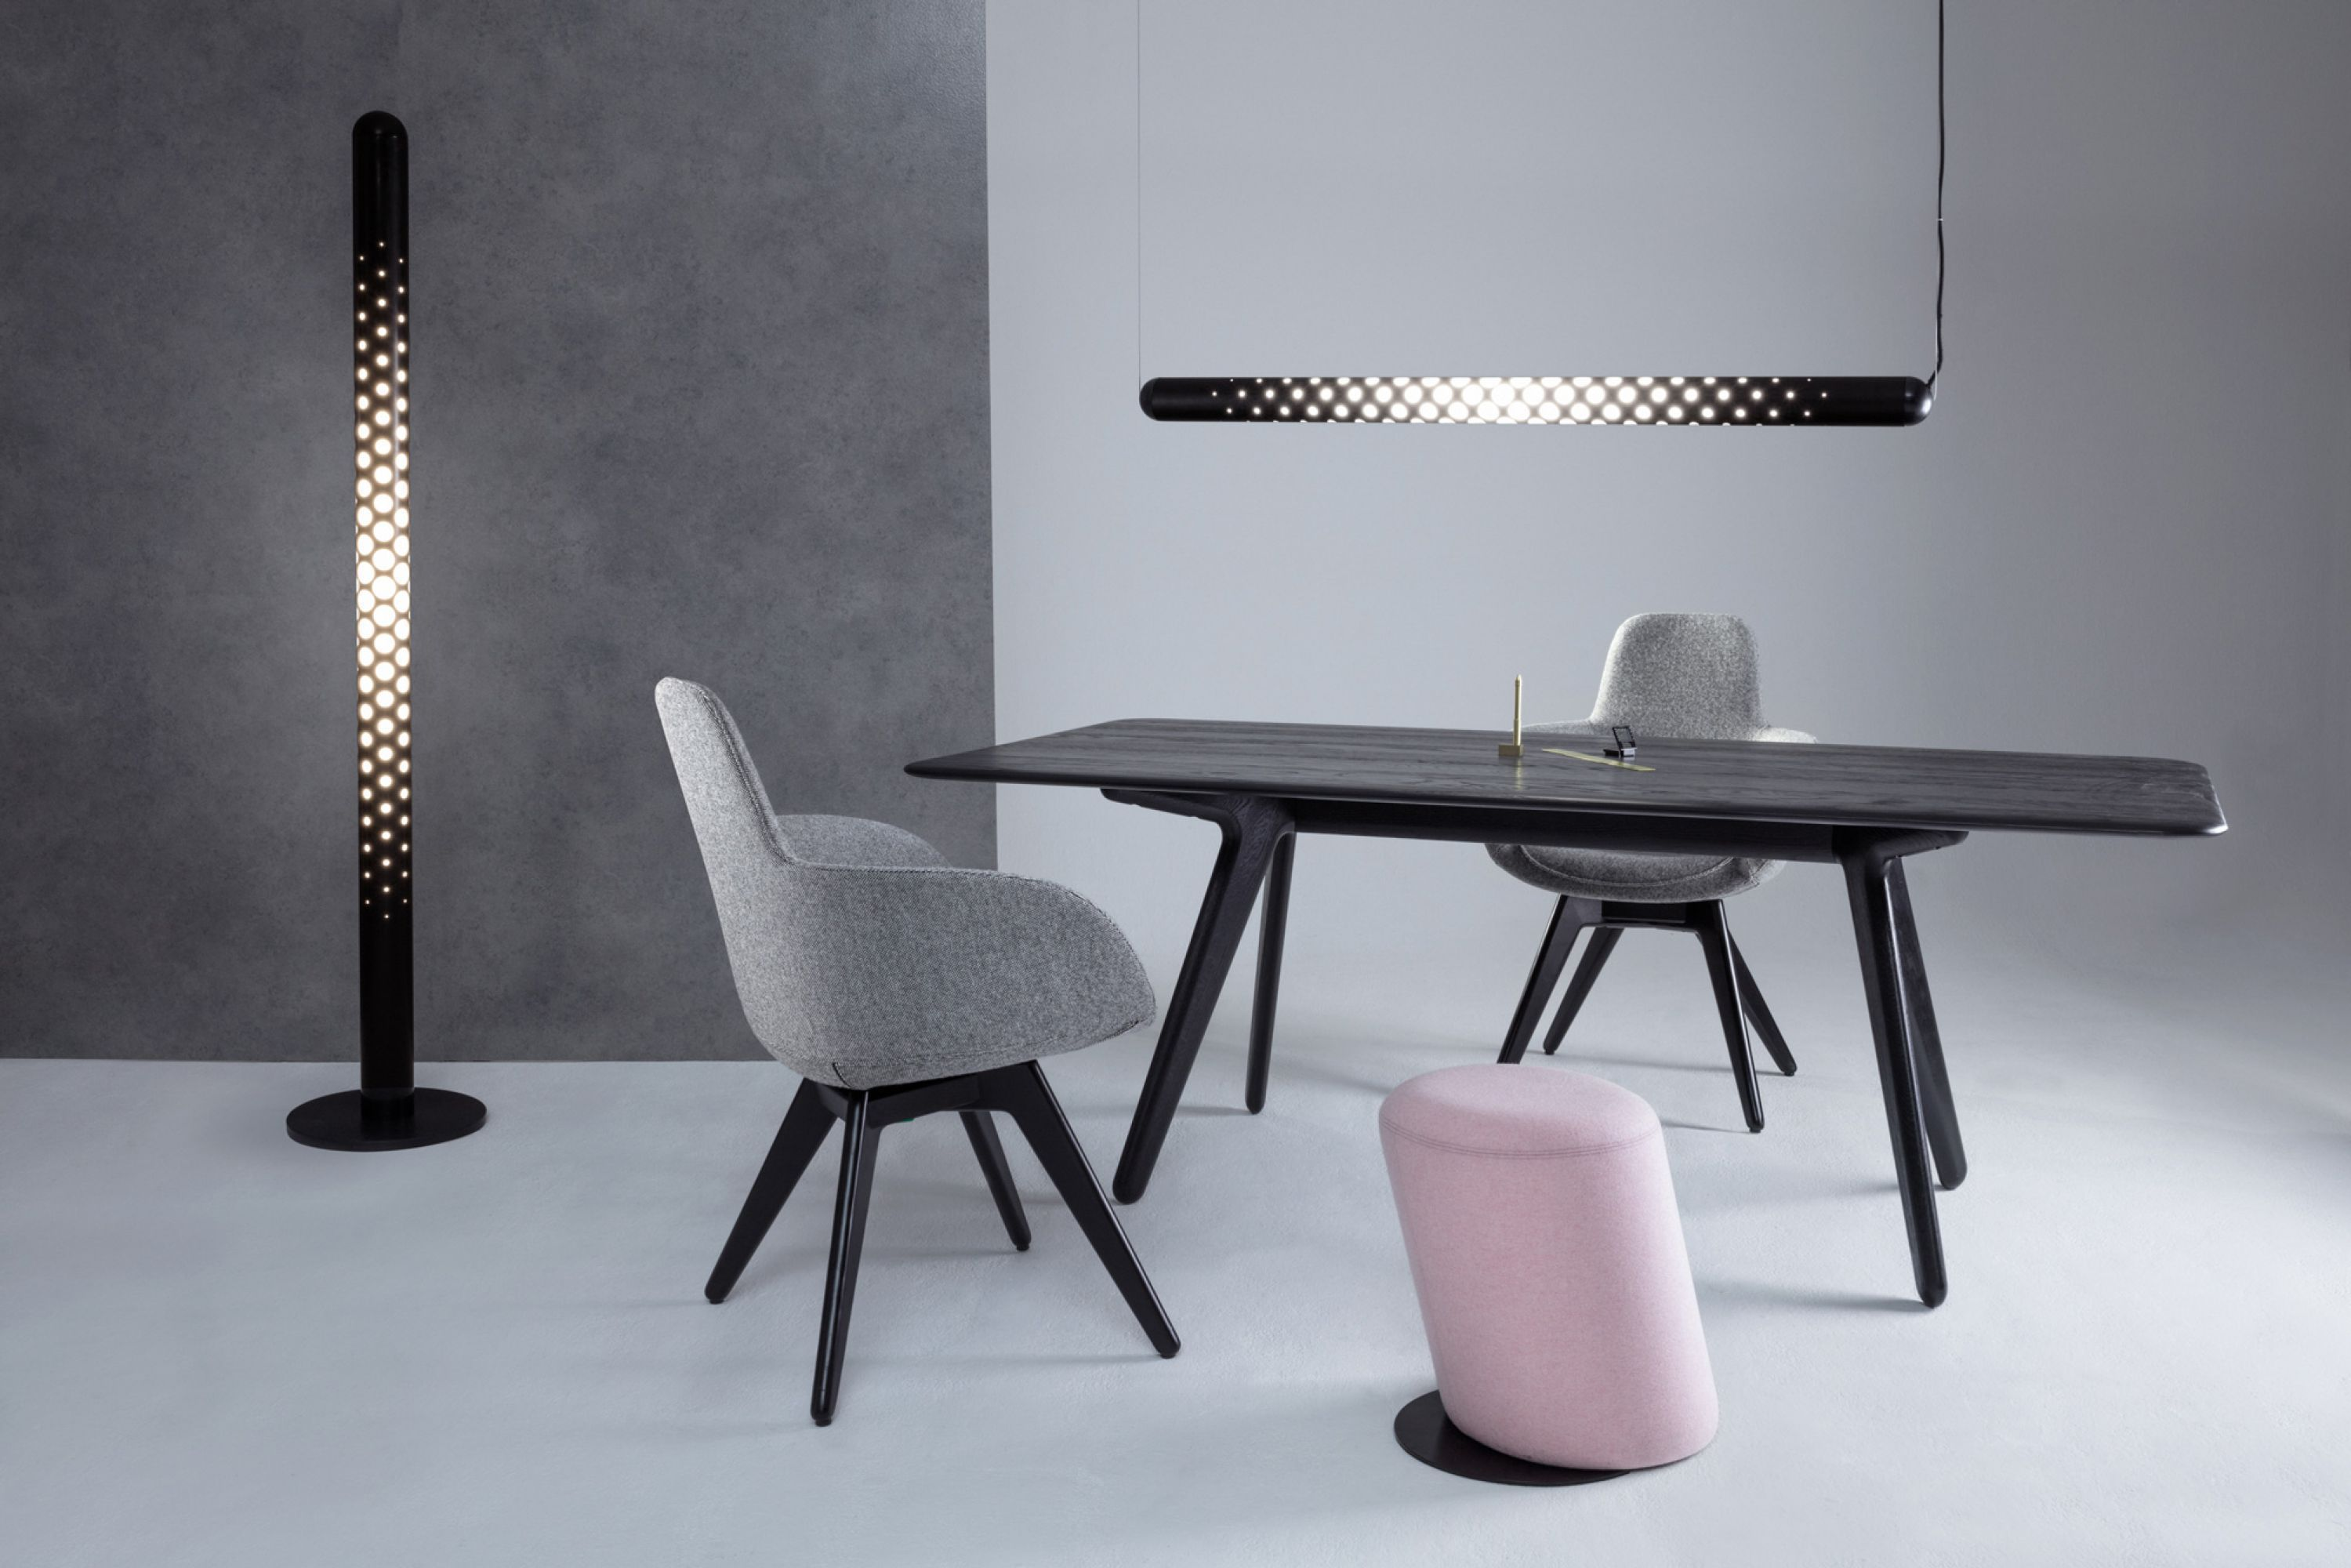 Meet Tube Tom Dixon's Take on Modern Floor Lamps modern floor lamps Meet Tube: Tom Dixon's Take on Modern Floor Lamps Meet Tube Tom Dixons Take on Modern Floor Lamps 1